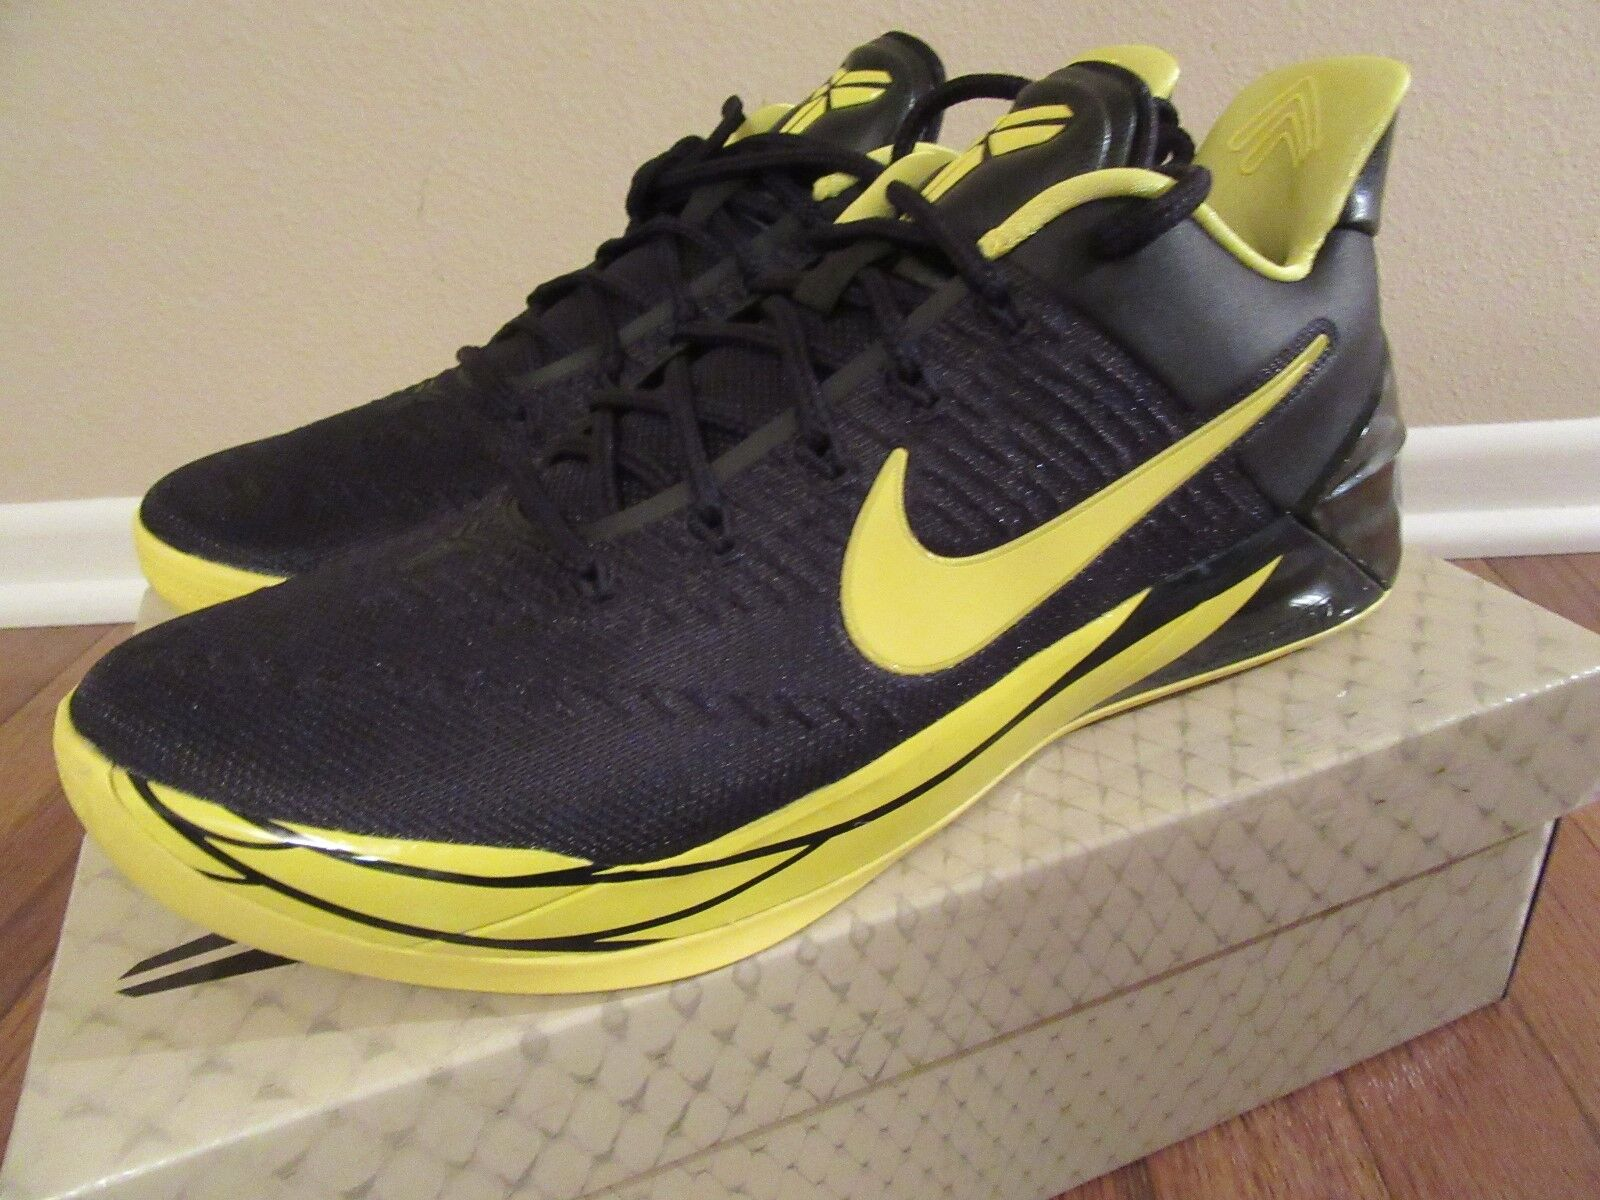 91952091695e ... where can i buy nike kobe a.d. oregon size 11 ds black yellow strike  922026 001